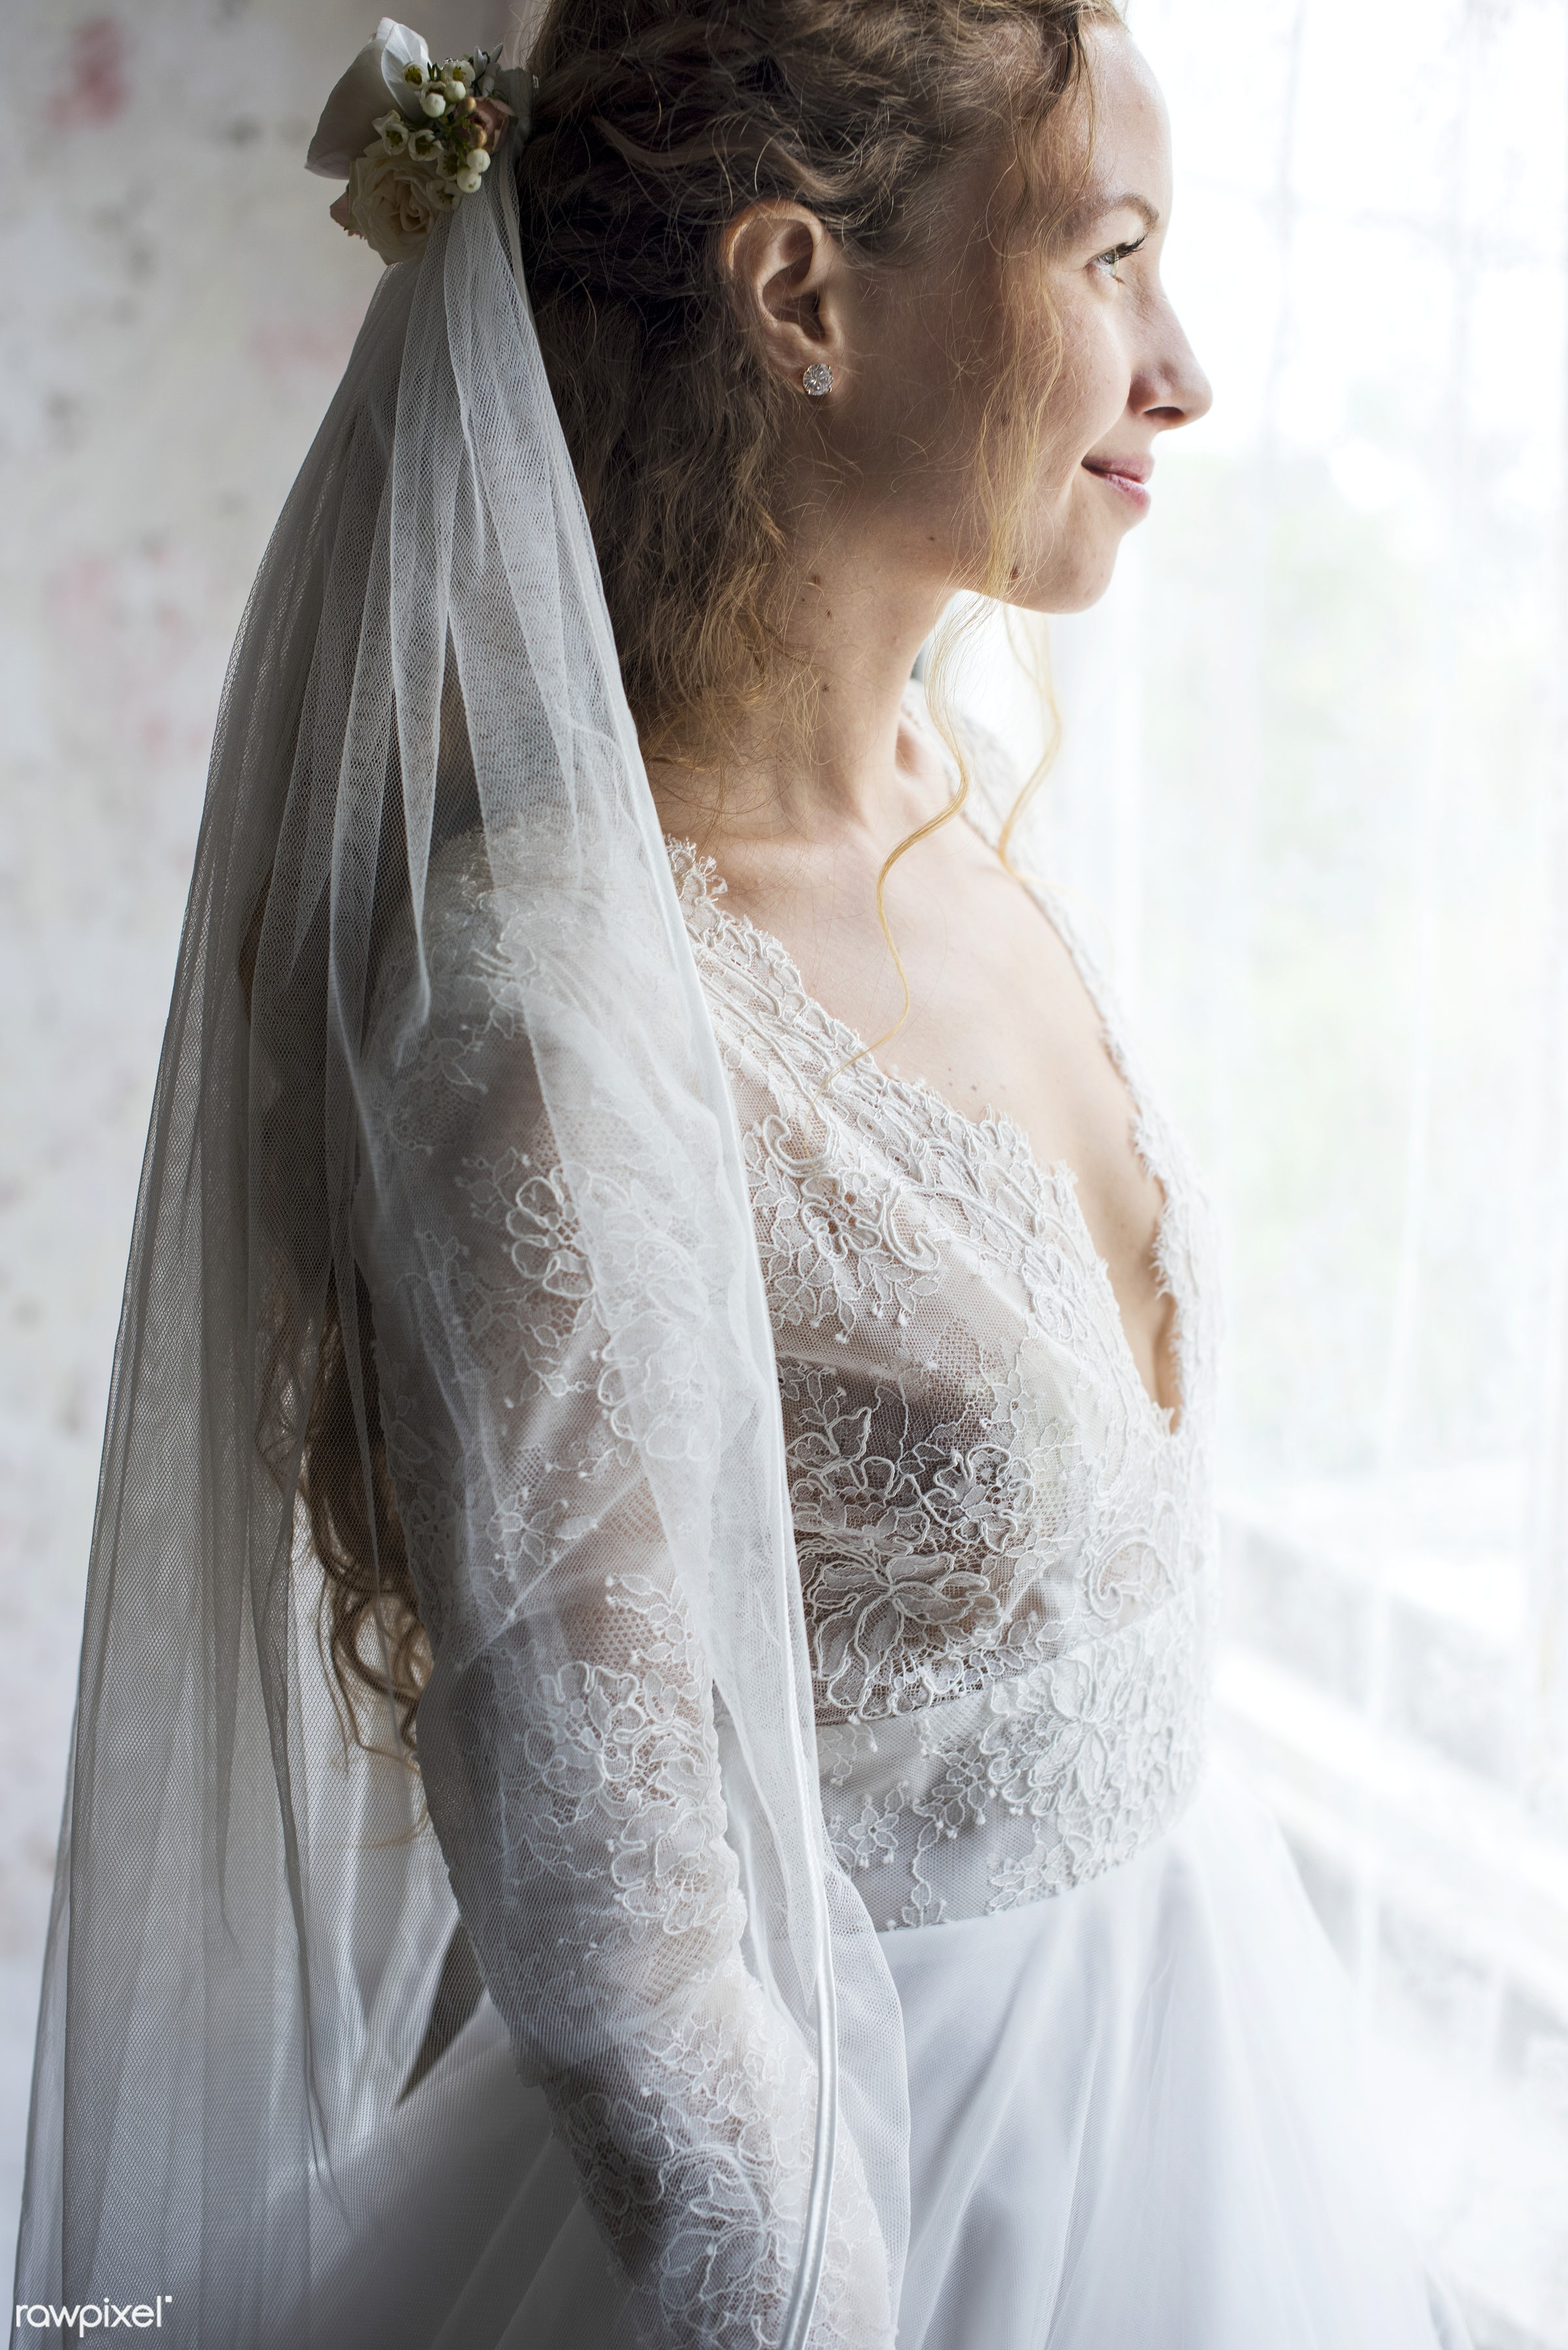 person, occasion, white dress, people, caucasian, love, glamour, gorgeous, attractive, woman, happy, feminine, gown, bride,...